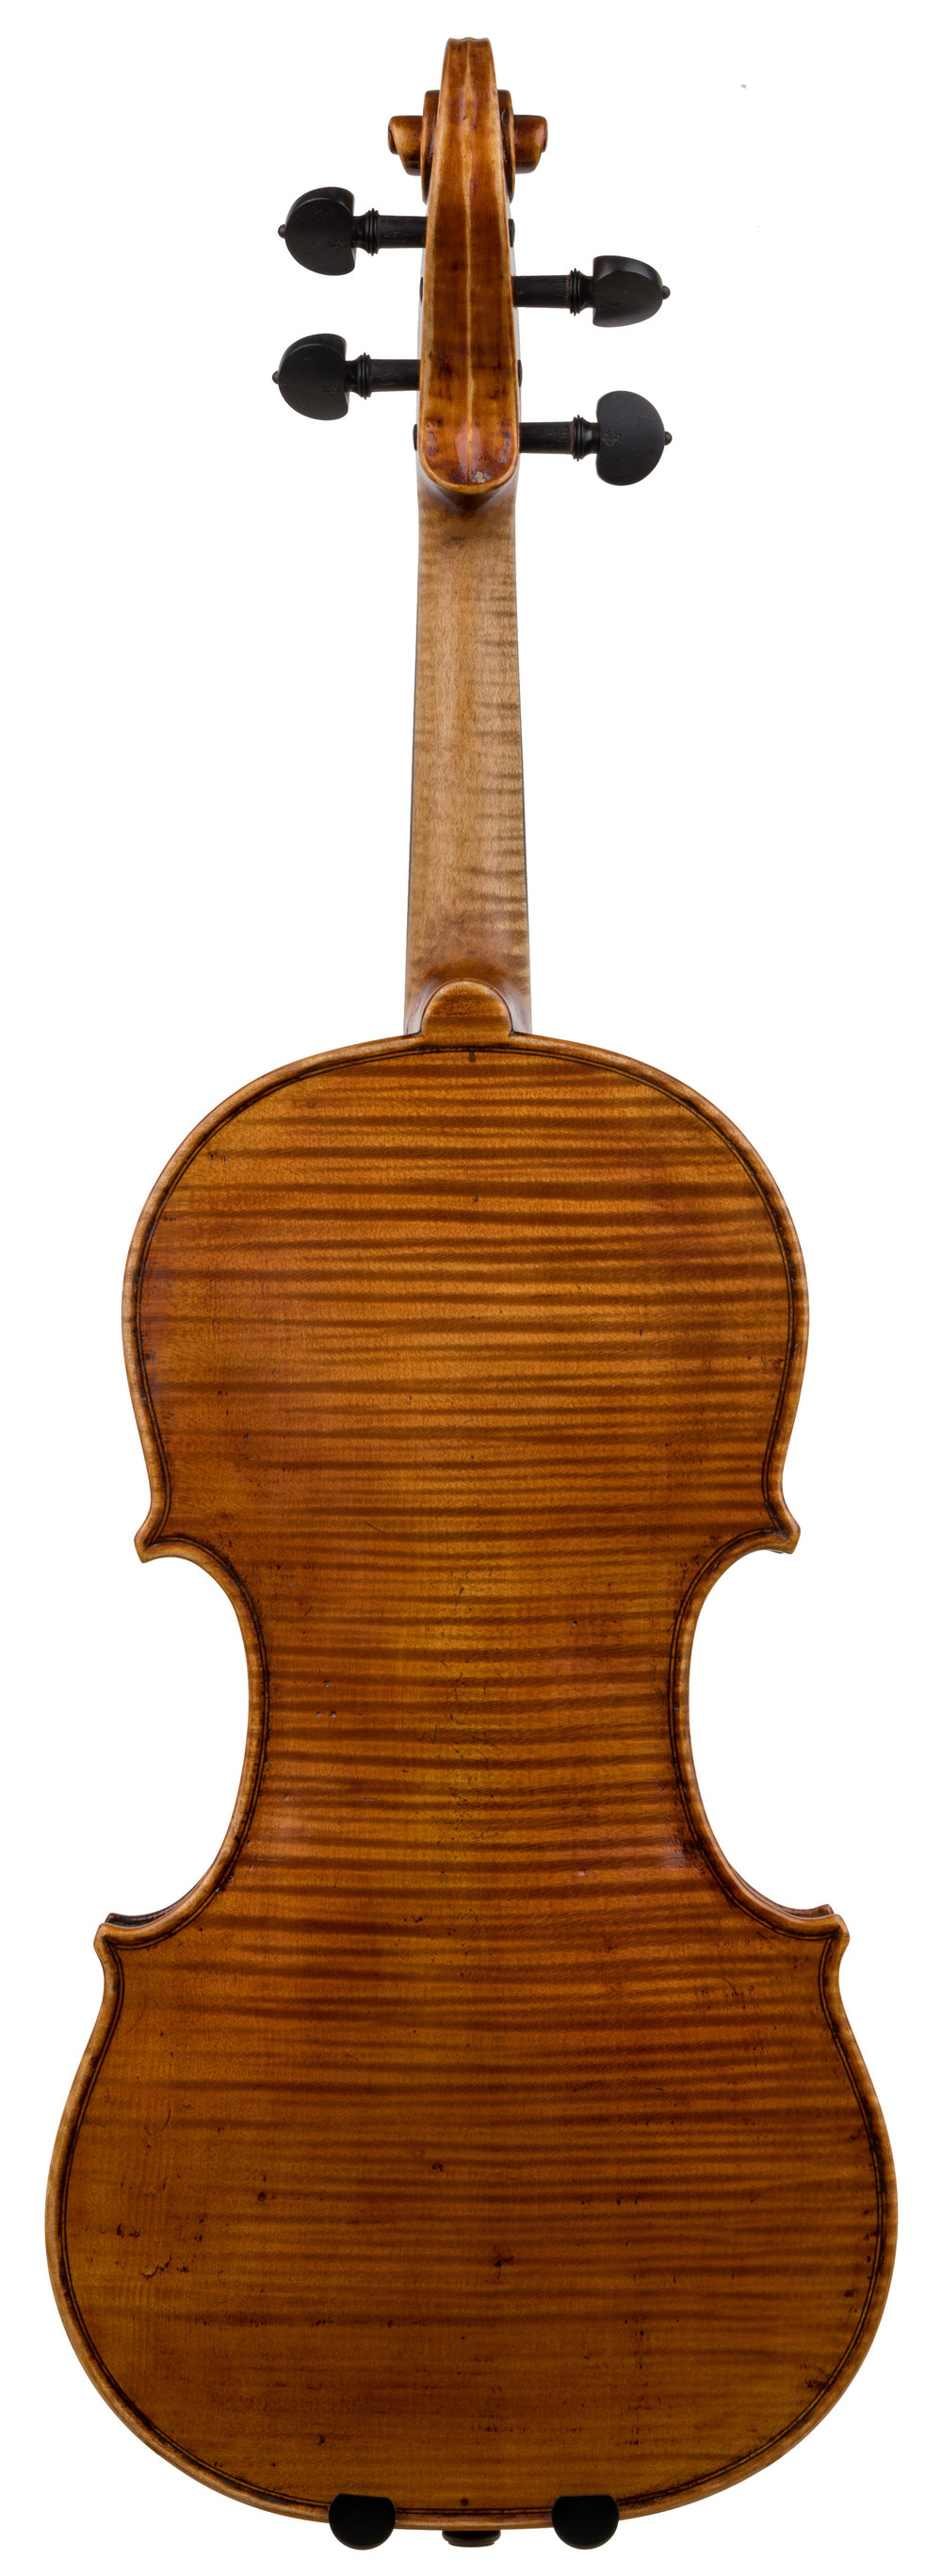 Peter R Seman, Guarneri 2017 back.jpg